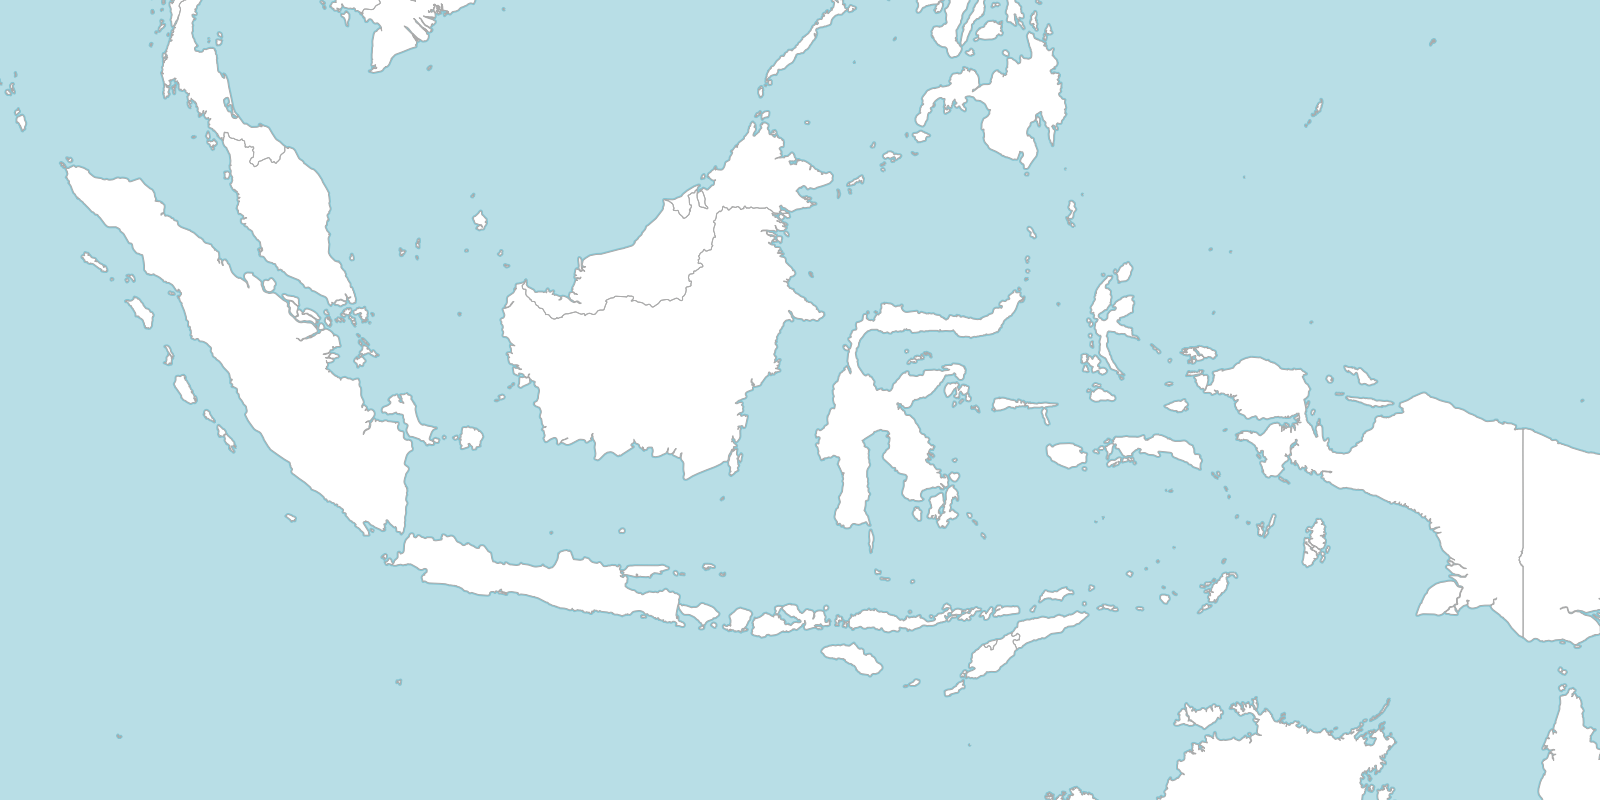 6 free maps of Indonesia - ASEAN UP